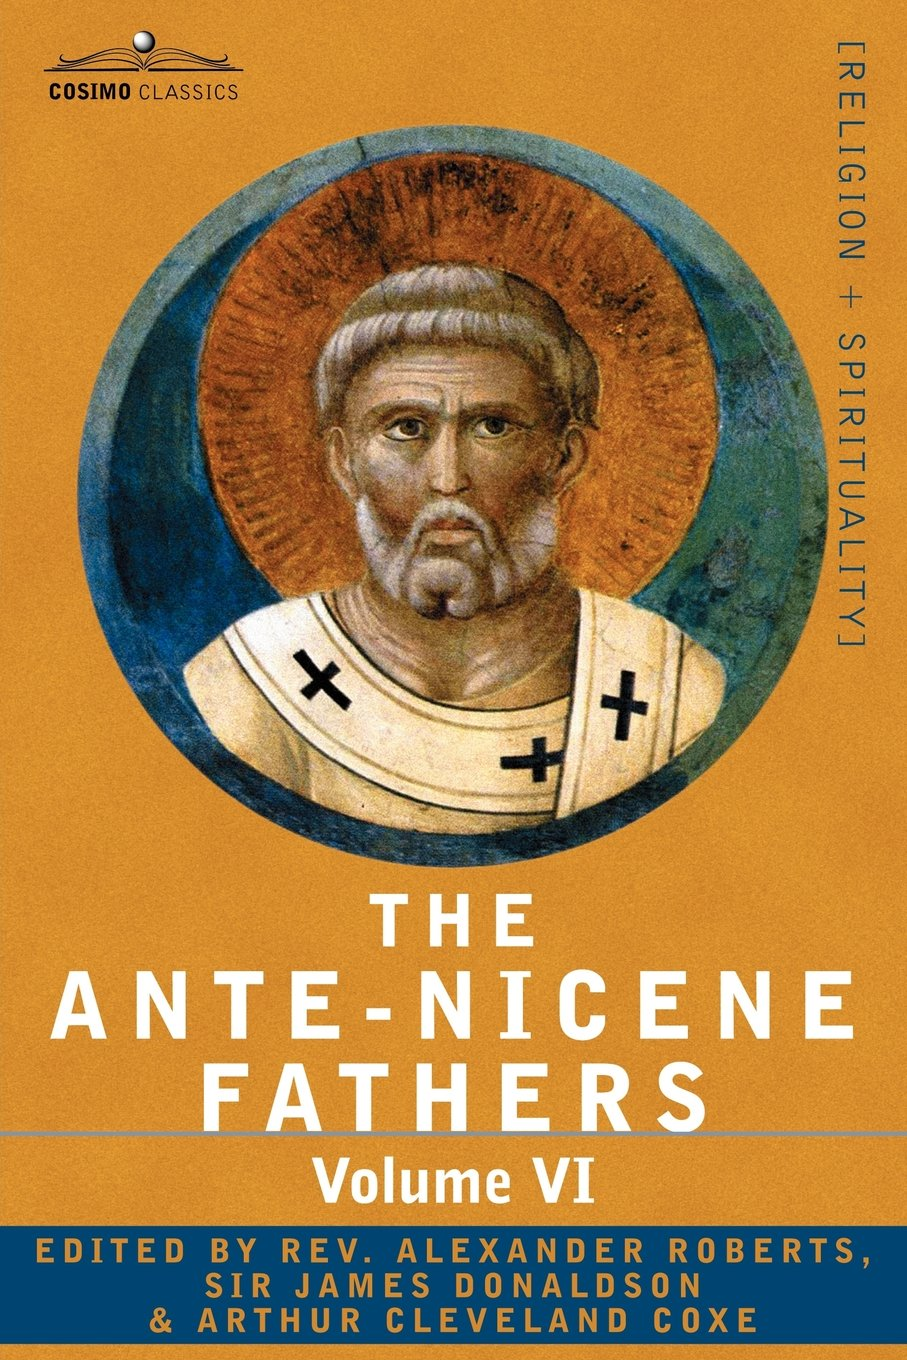 The Ante-Nicene Fathers: The Writings of the Fathers Down to A.D. 325, Volume VI Fathers of the Third Century - Gregory Thaumaturgus; Dinysius